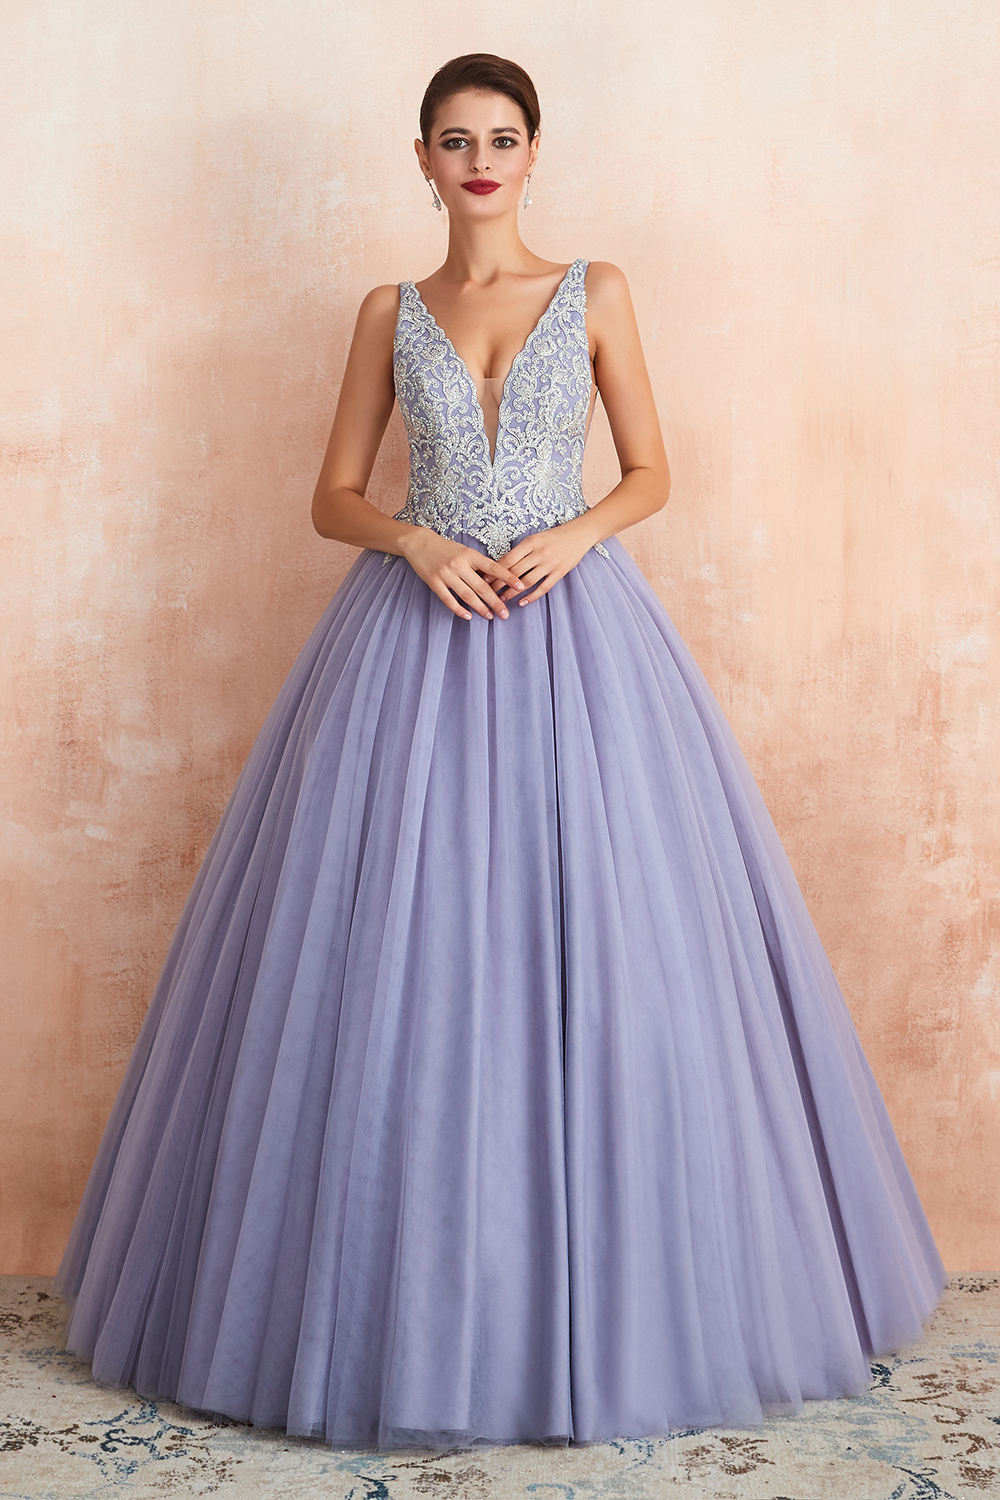 BMbridal Gorgeous Lavender Lace Prom Dress V-Neck Ball Gown Tulle Formal Wears